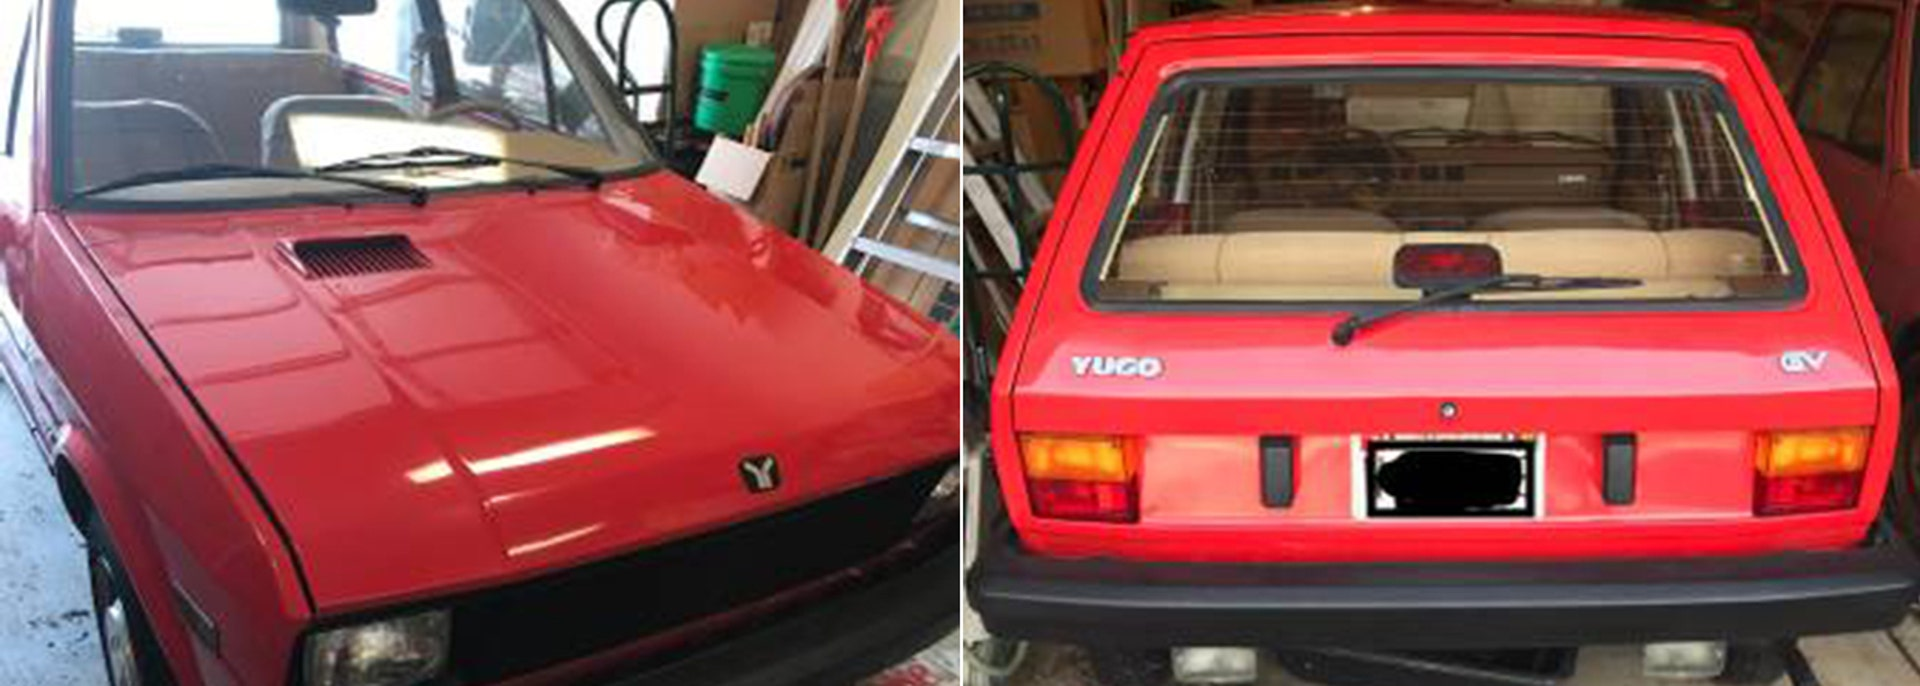 Like new' Yugo on Craigslist was parked in a garage for 31 years